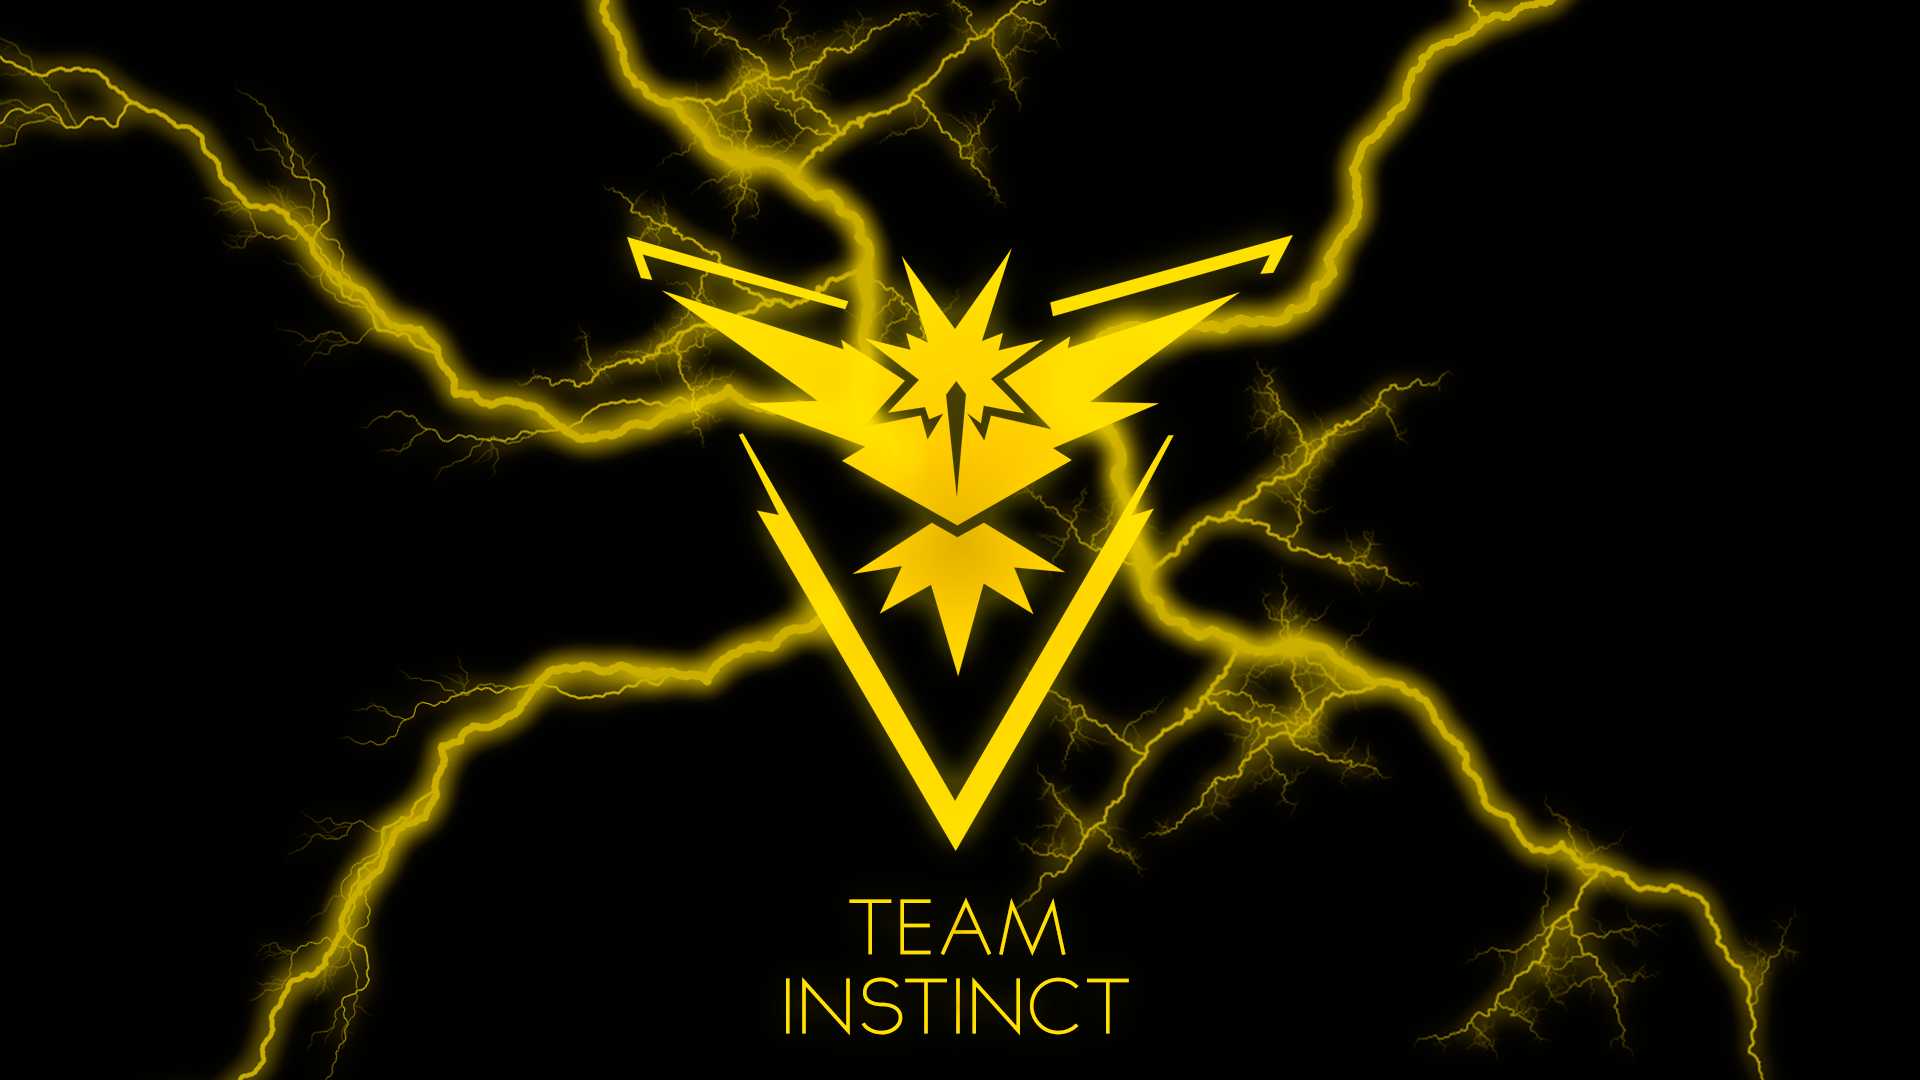 Wallpaper Full Hd Pokemongo Teaminstinct By Infzz On Deviantart